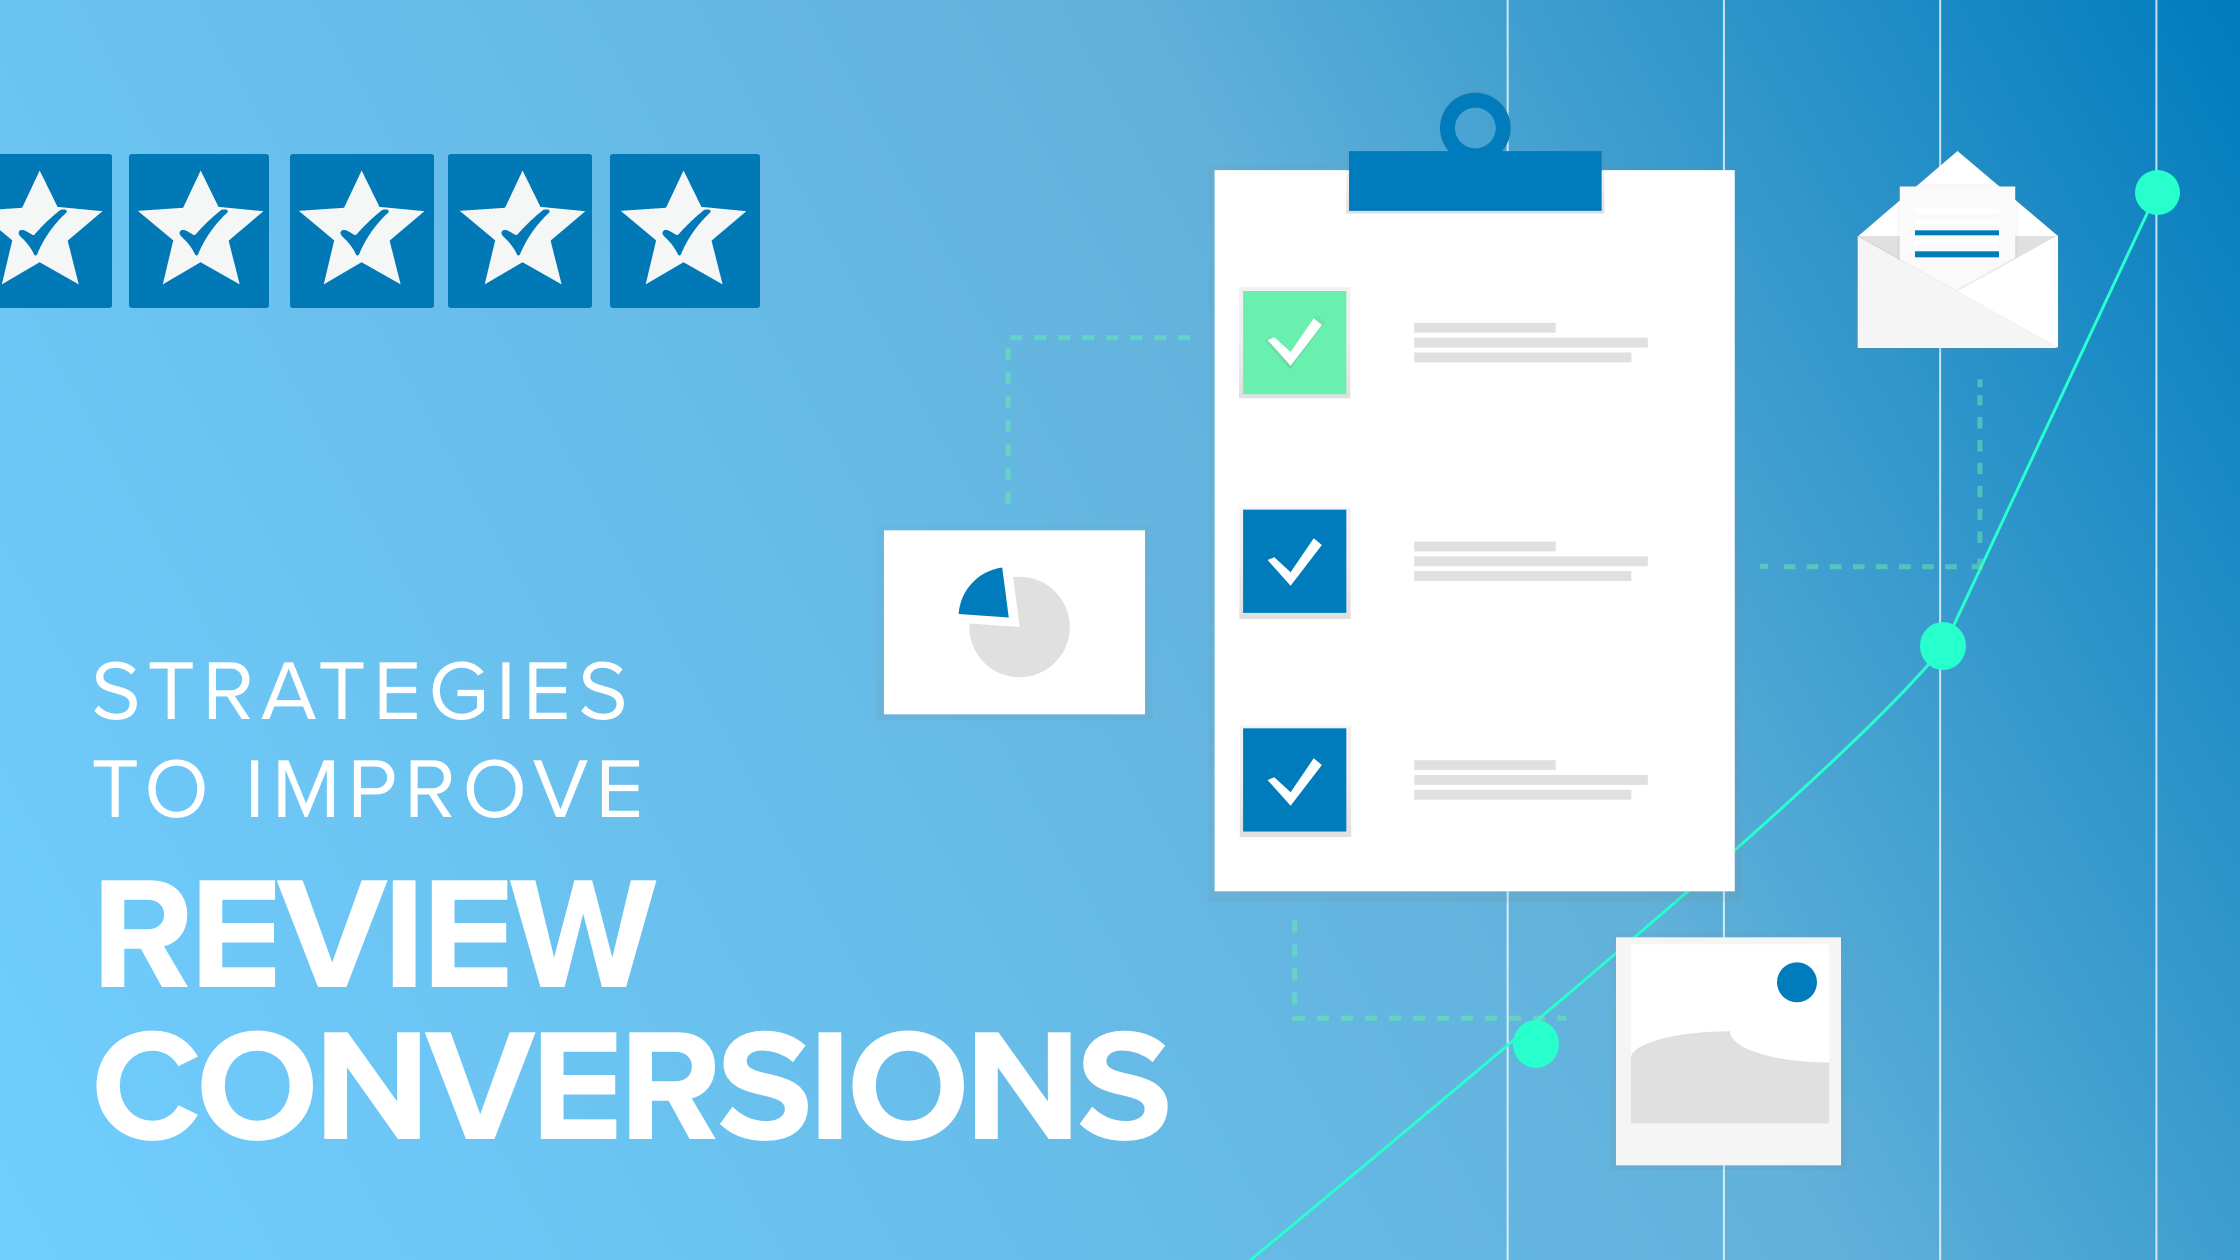 strategies-to-improve-review-conversions